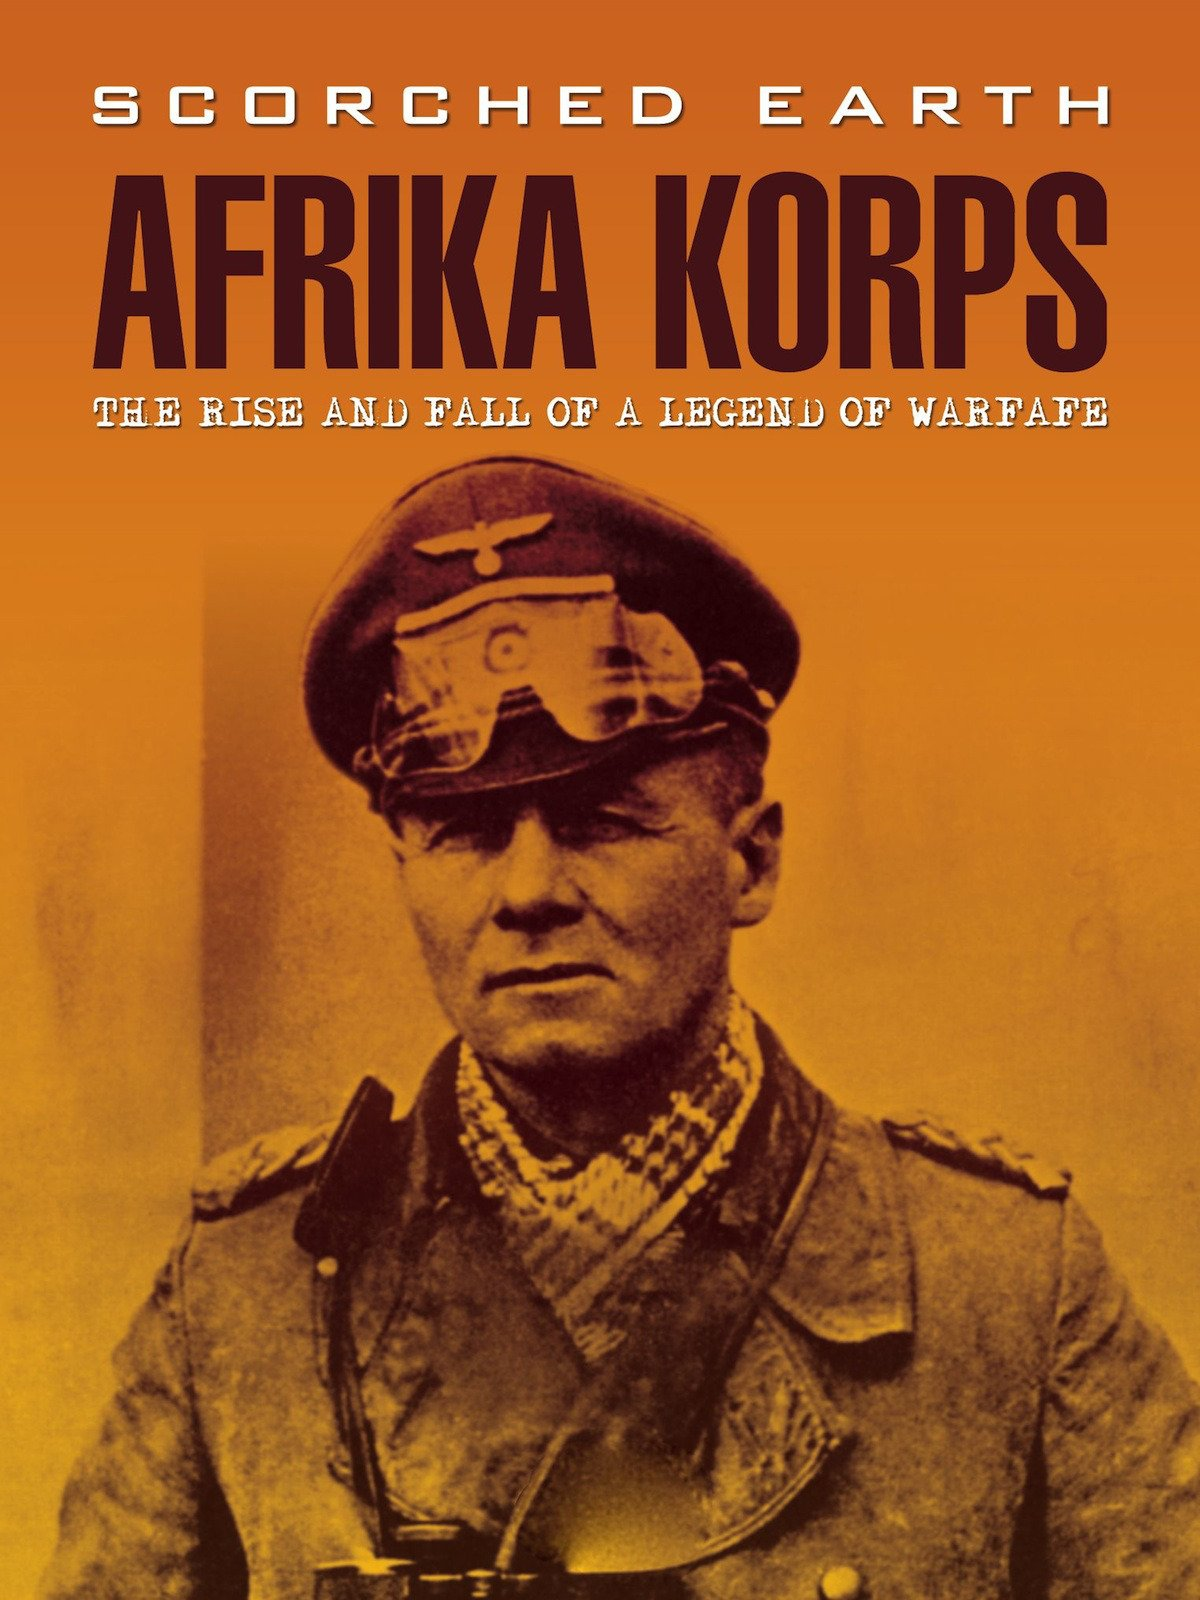 Scorched Earth: Africa Korps